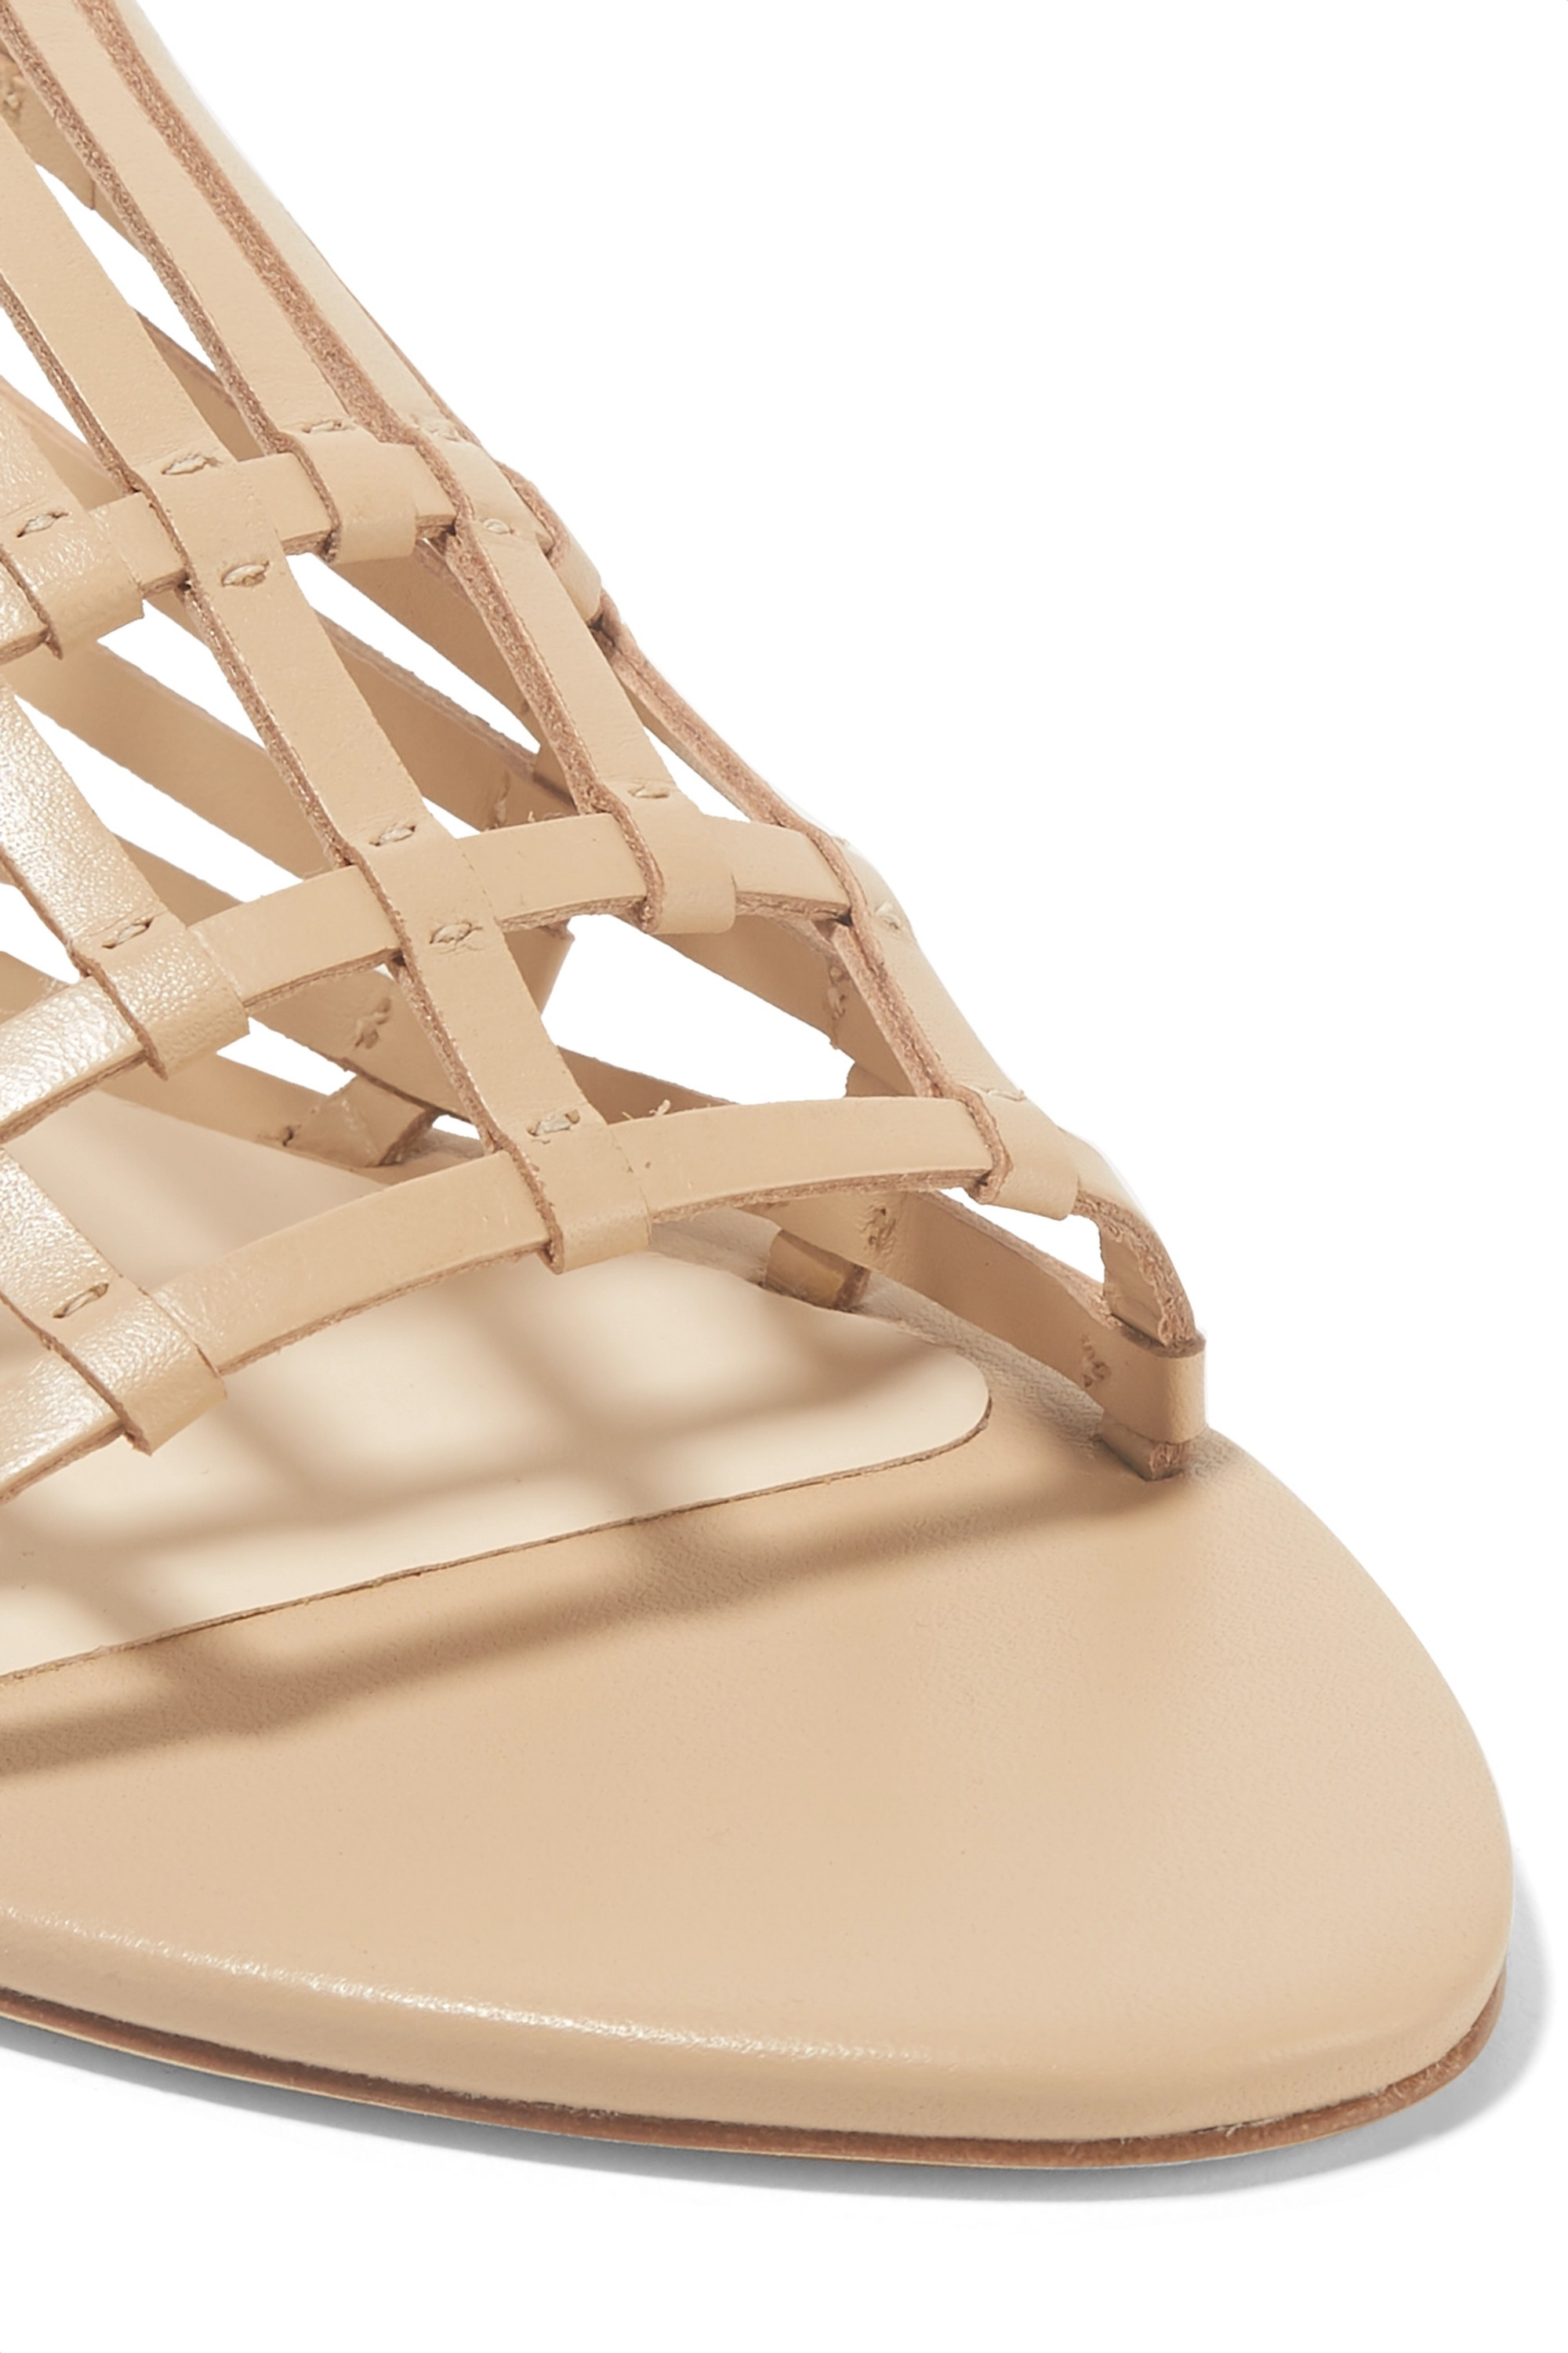 Cult Gaia Zoe woven leather sandals